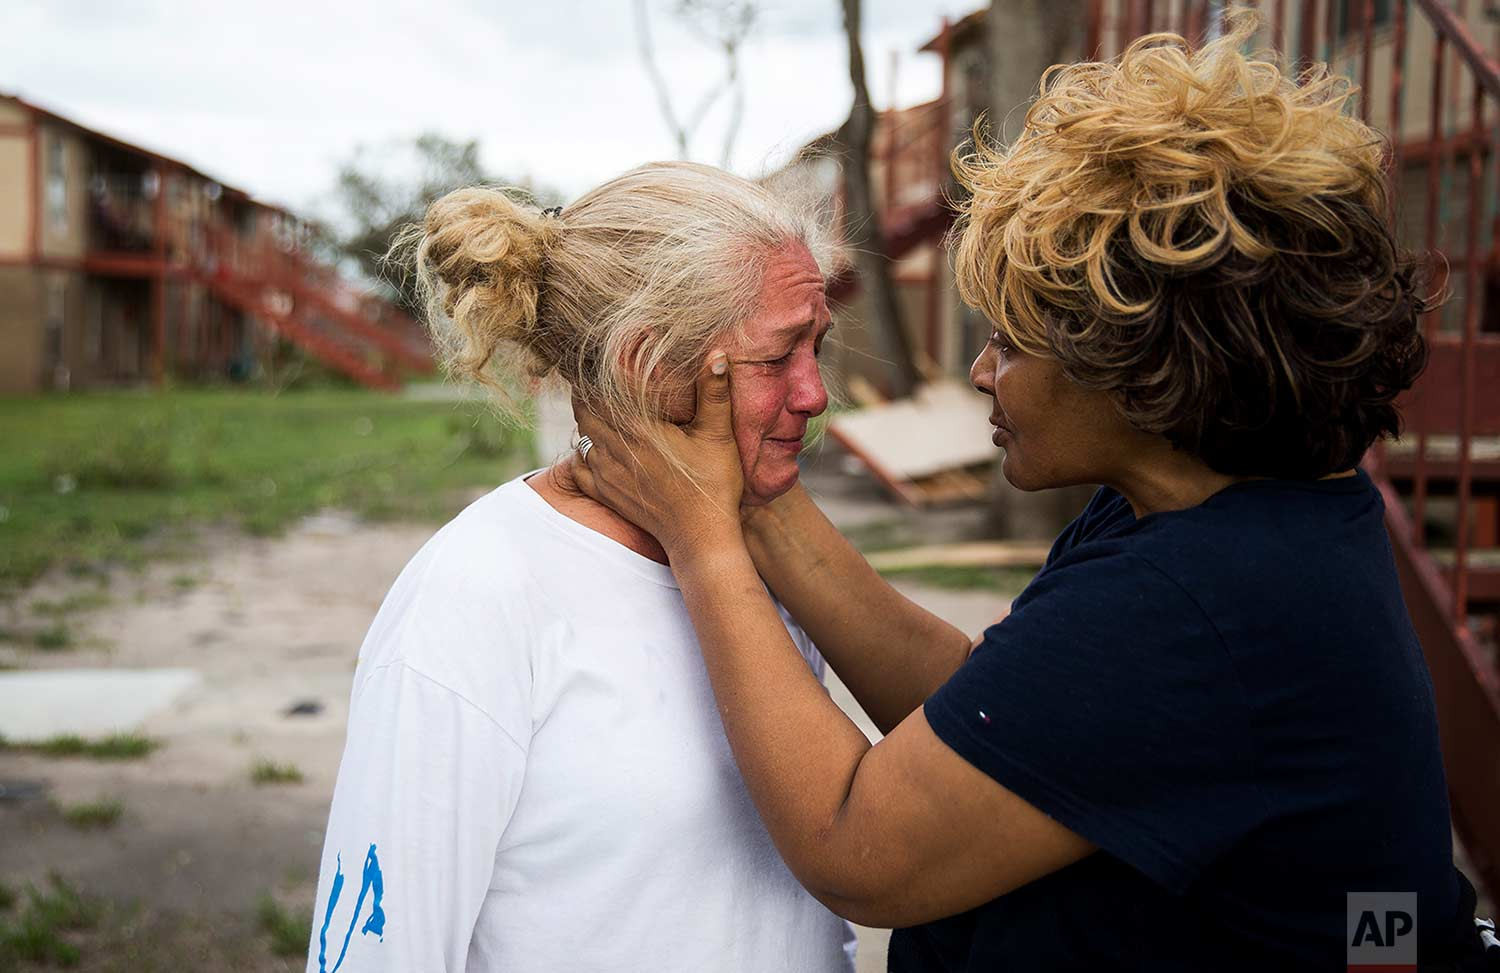 Genice Gipson comforts her lifelong friend, Loretta Capistran, outside of Capistran's apartment complex in Refugio, Texas, on Monday, Aug. 28, 2017. (Nick Wagner/Austin American-Statesman via AP)